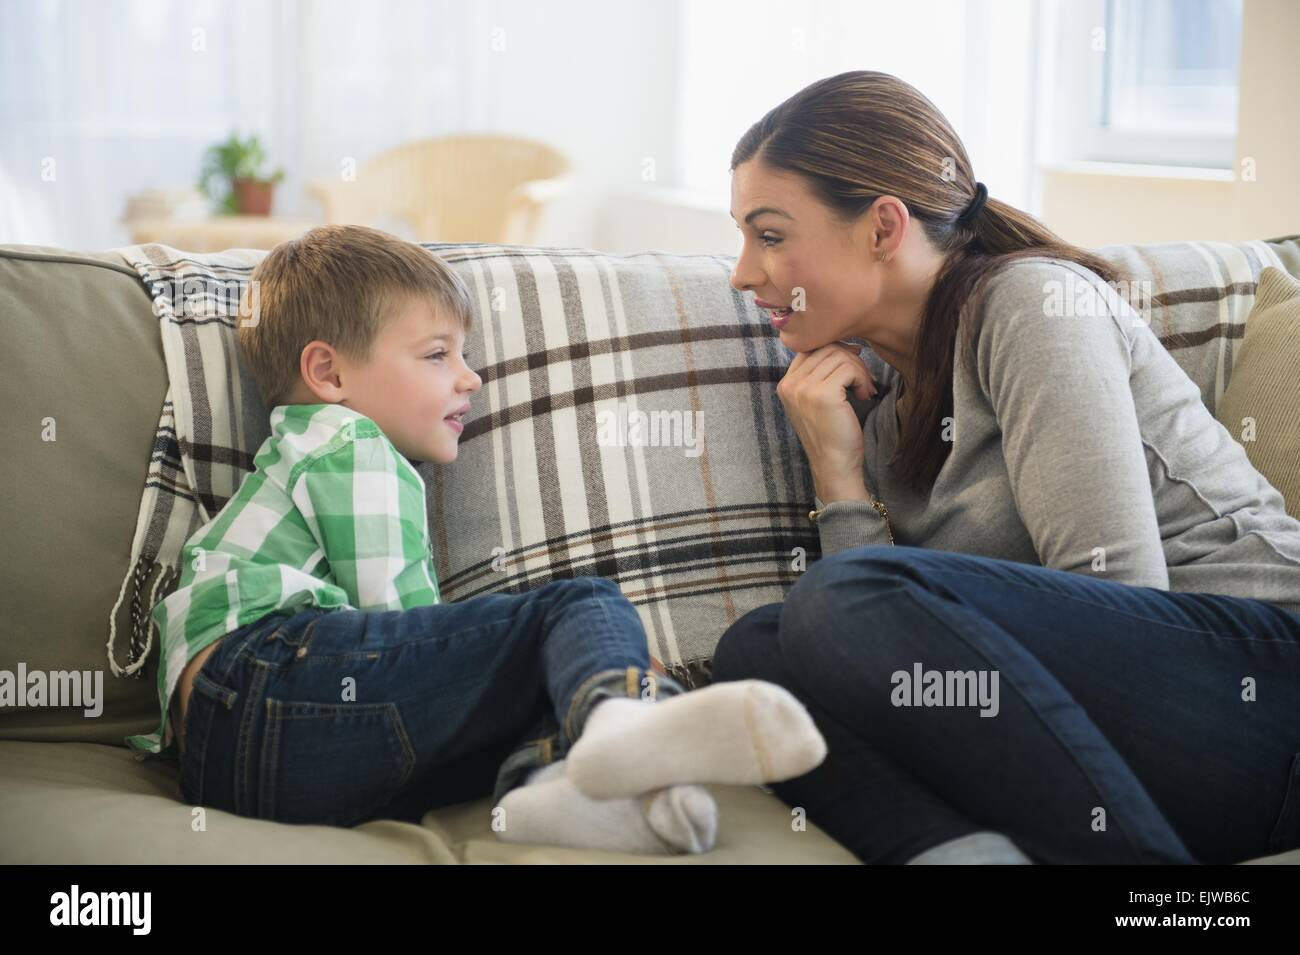 Mother and son (6-7) sitting on sofa - Stock Image